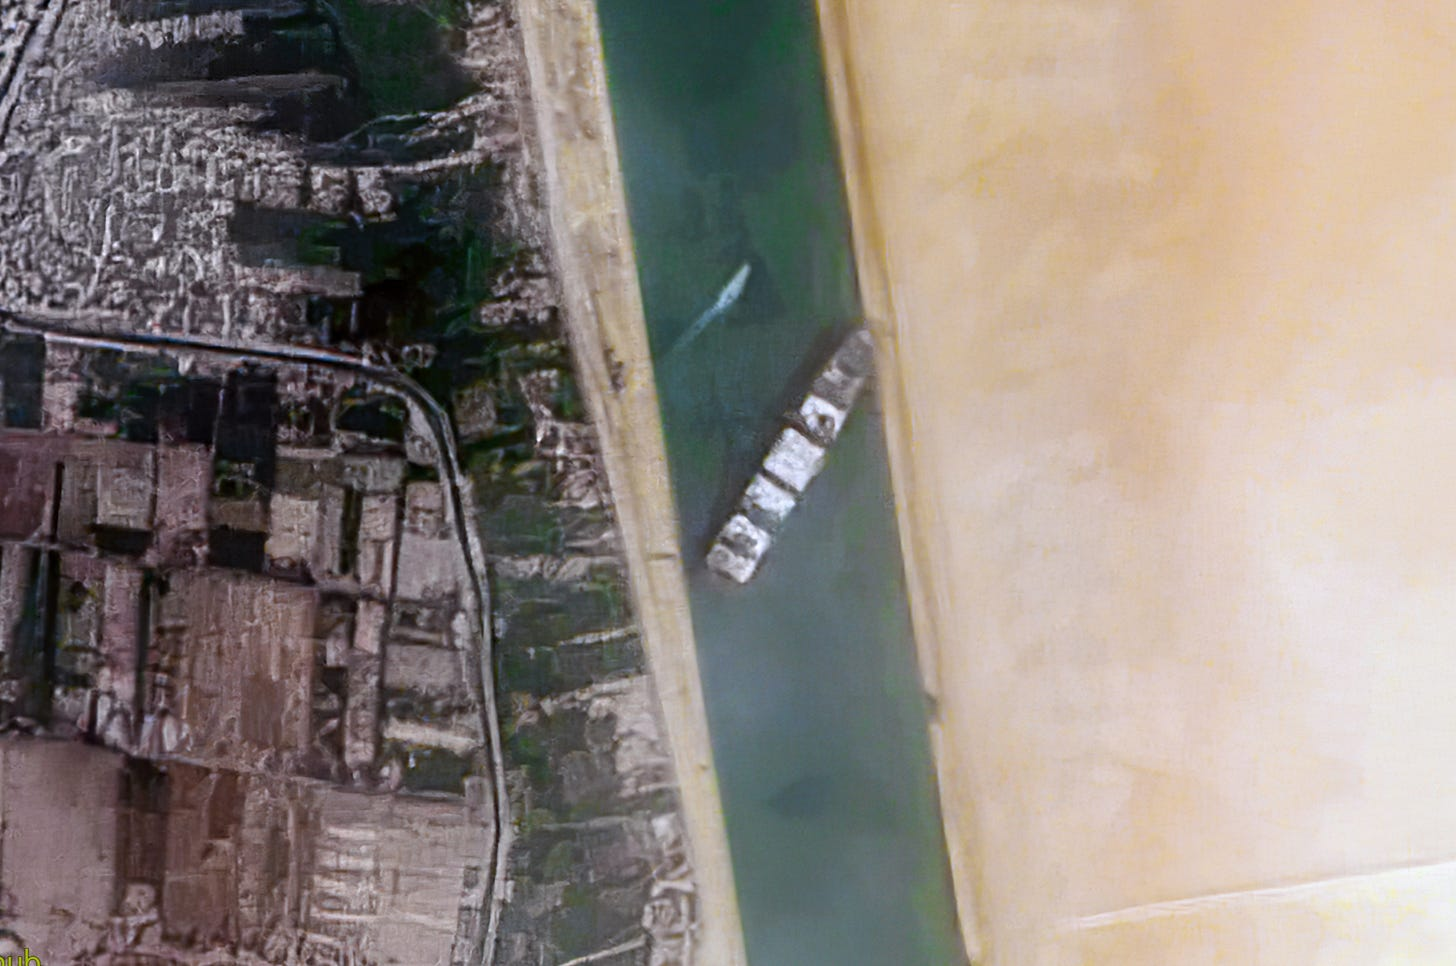 File:Container Ship 'Ever Given' stuck in the Suez Canal, Egypt - March  24th, 2021 cropped.jpg - Wikimedia Commons